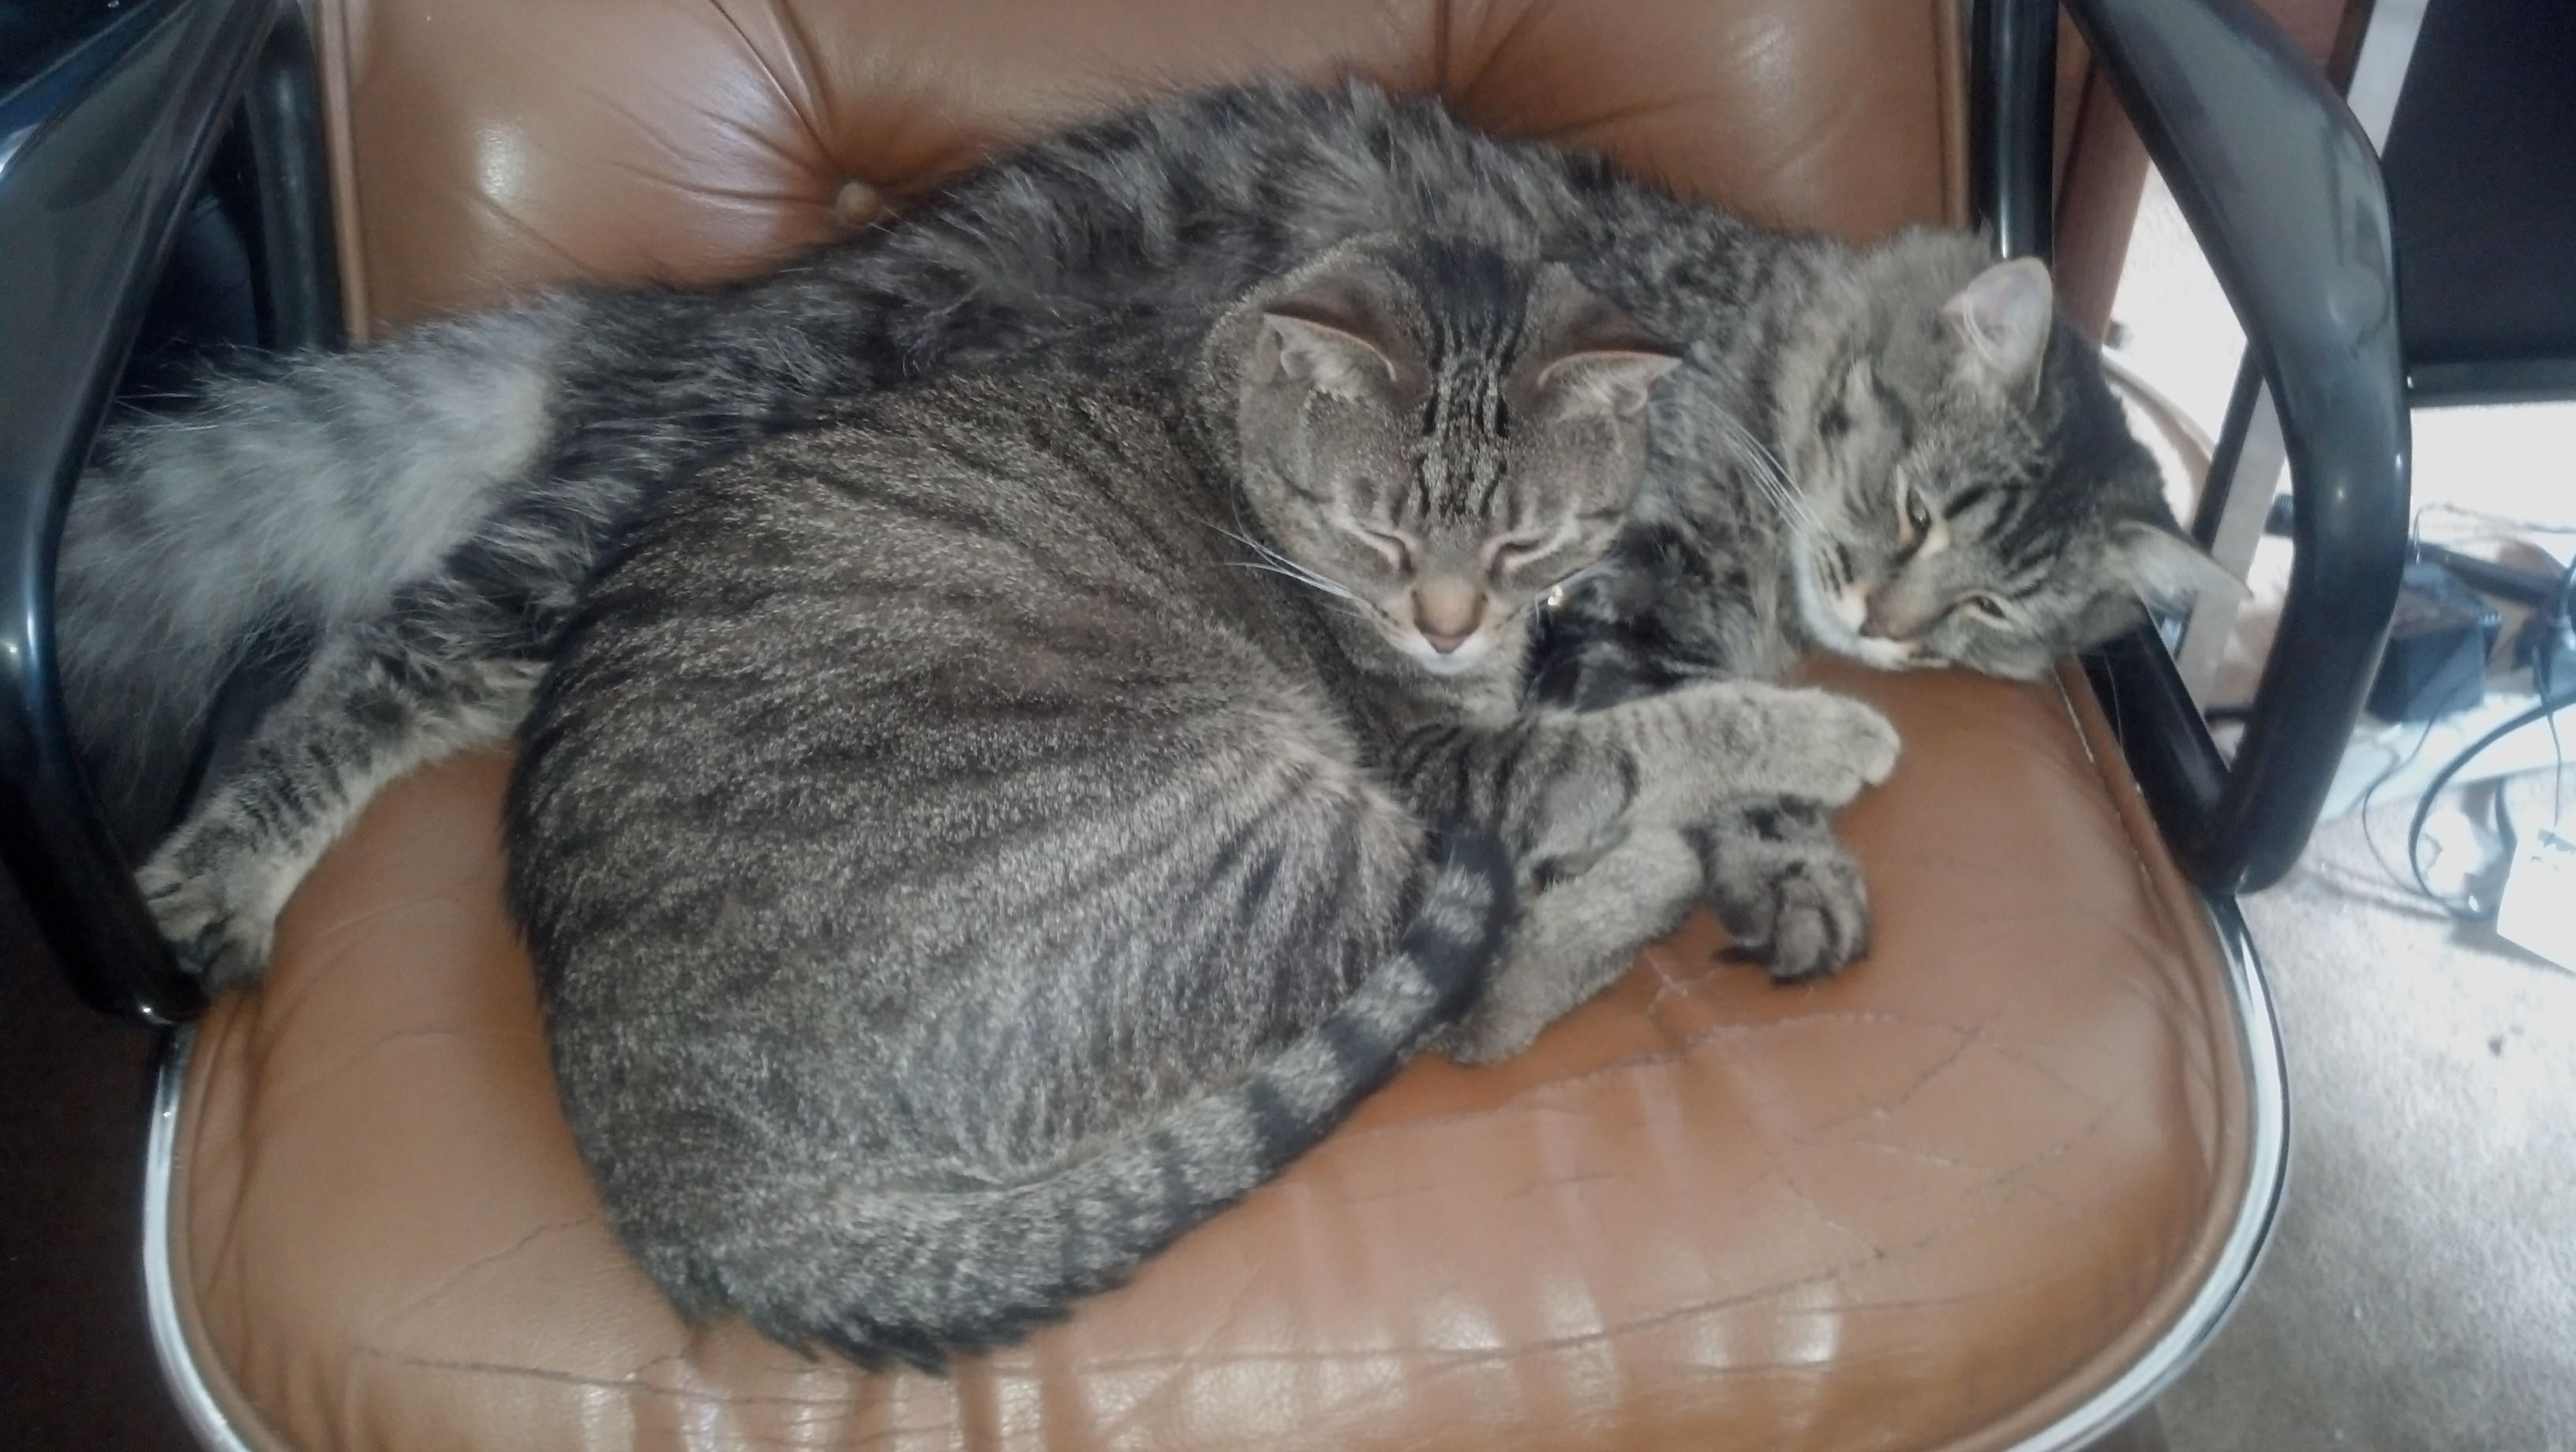 Two of our adopted kitties in their FOREVER home! Chester